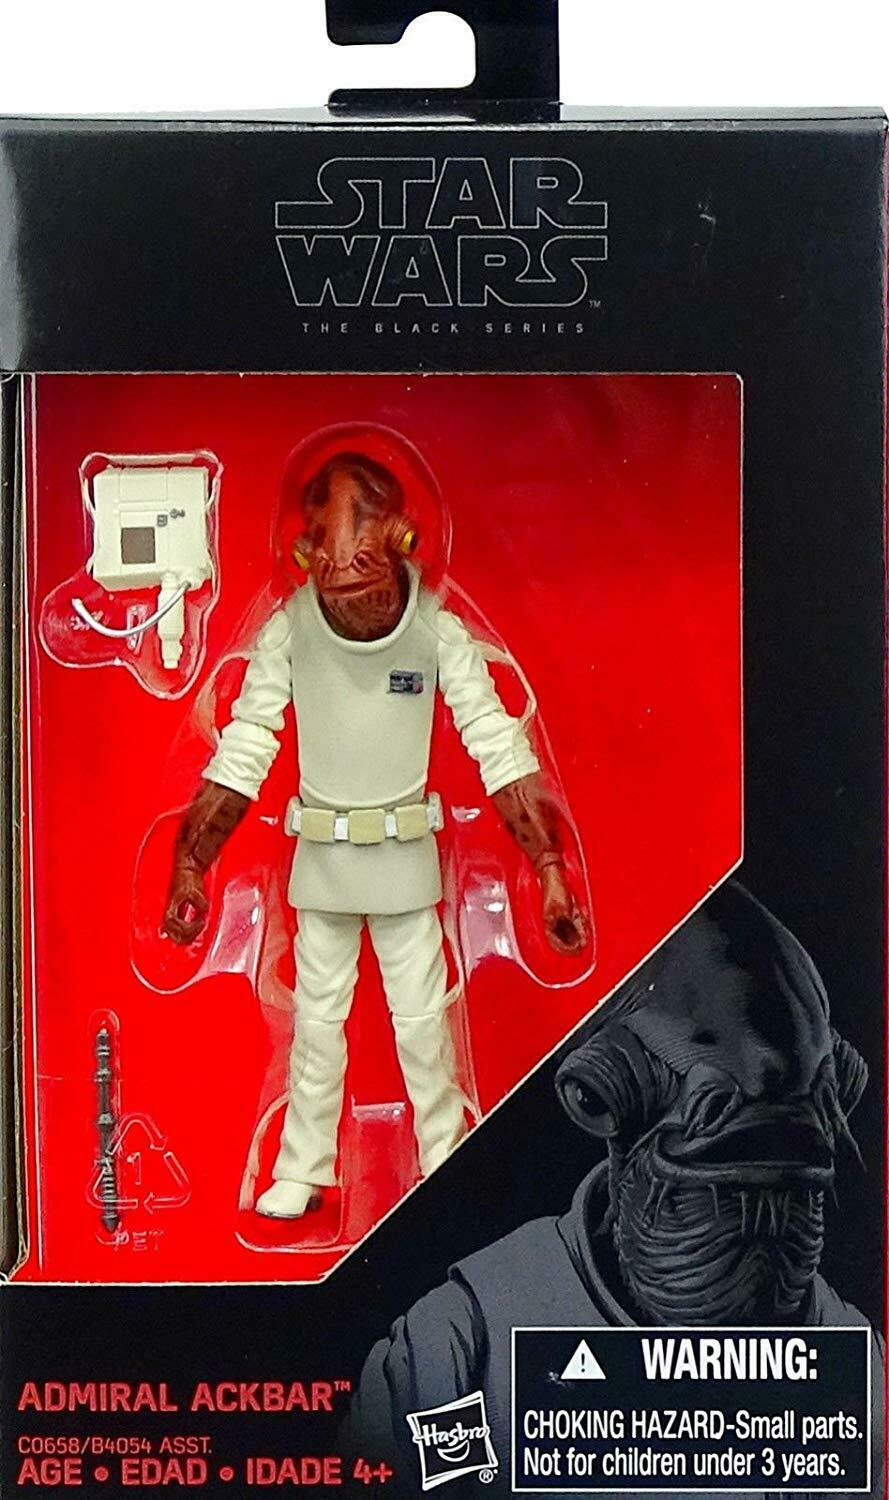 2016 Star Wars The Black Series ADMIRAL ACKBAR Return of the Jedi Sealed New